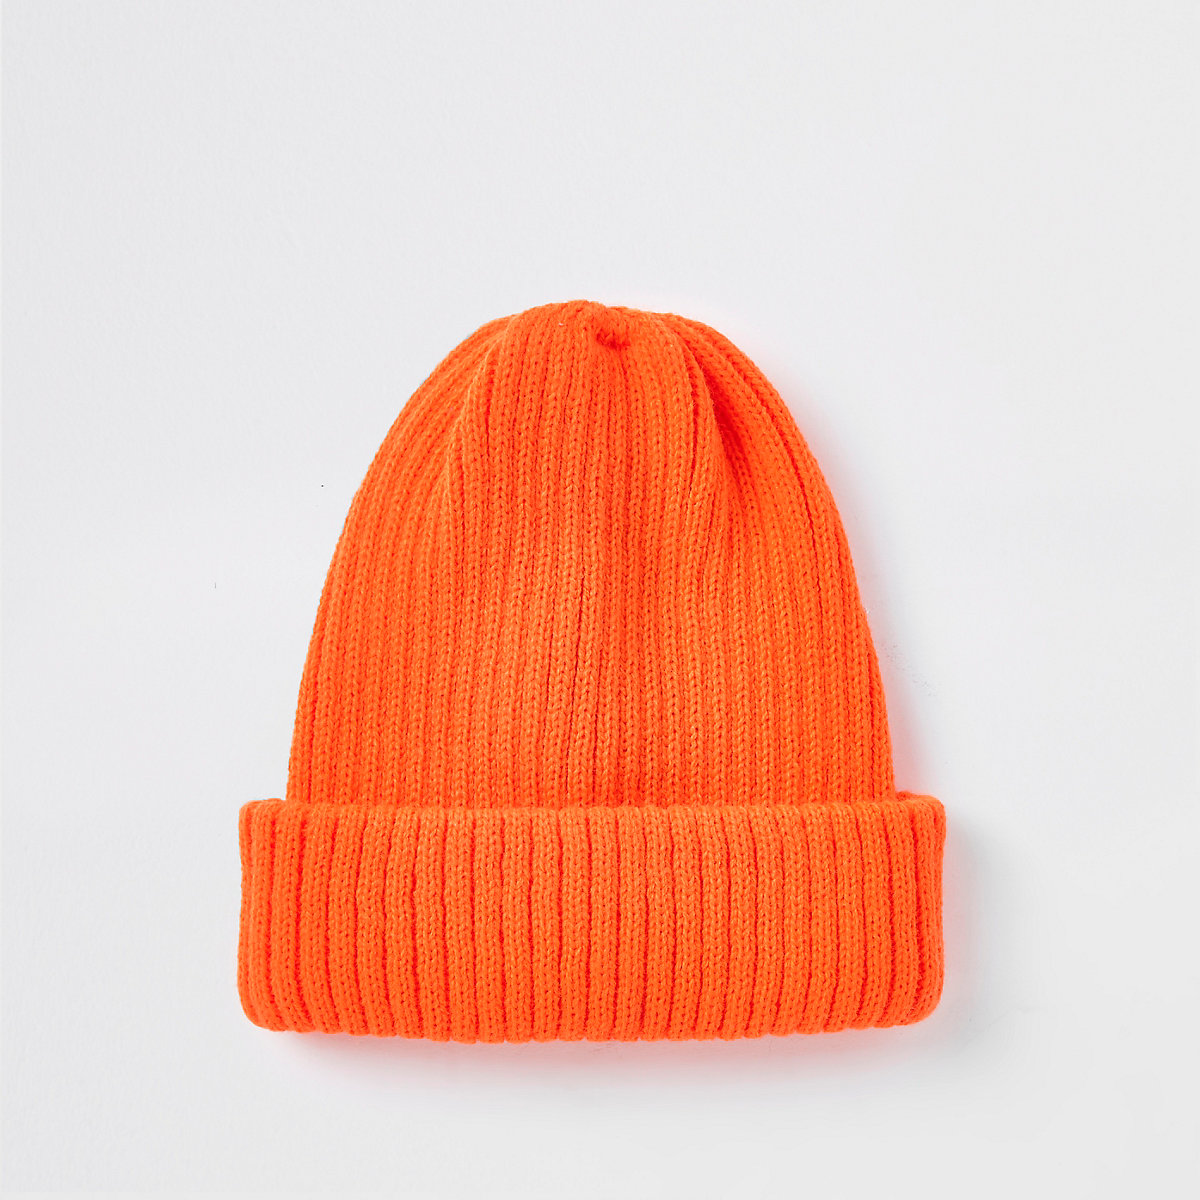 Neon orange fisherman knit beanie hat